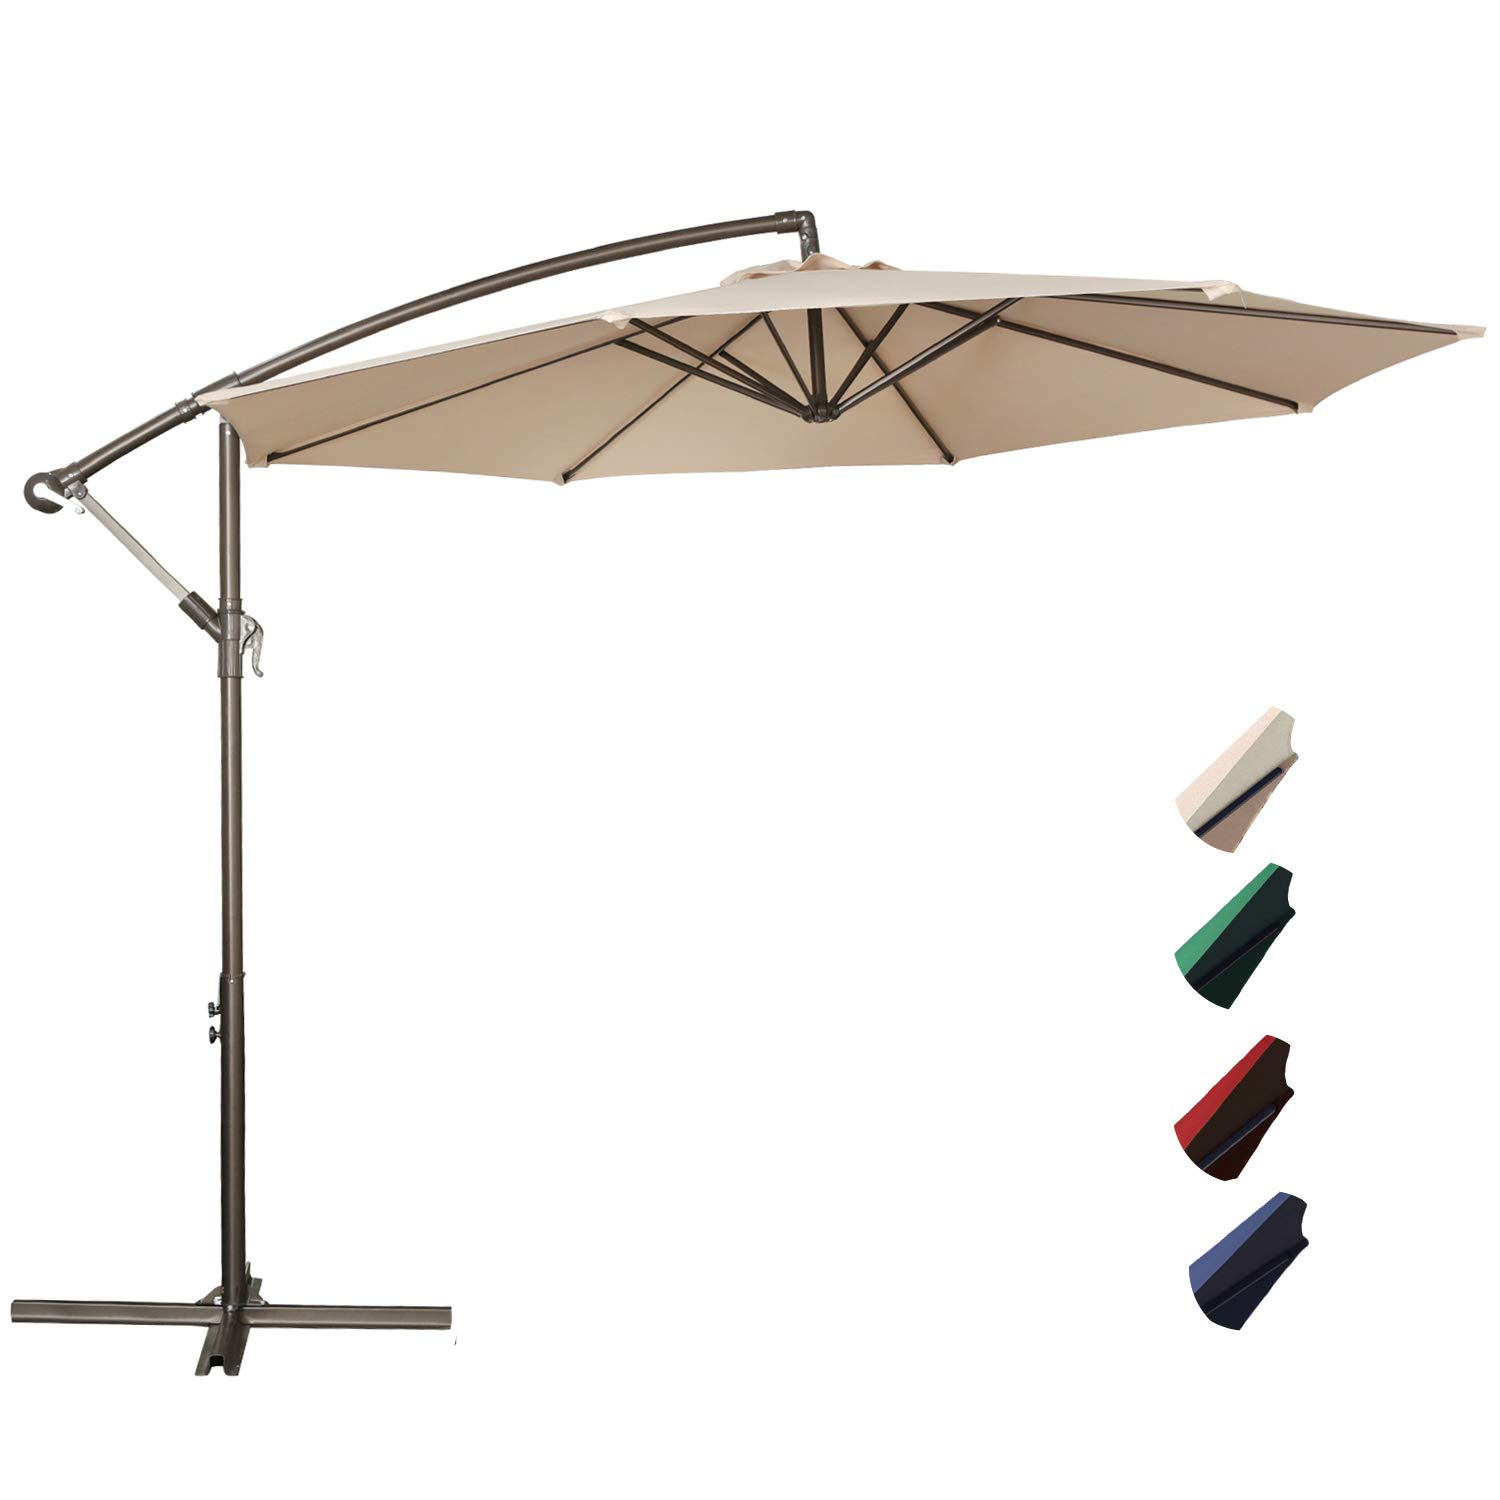 RUBEDER Offset Umbrella - 10Ft Cantilever Patio Hanging Umbrella,Outdoor Market Umbrellas with Crank Lift & Cross Base (10 Ft, Beige) by RUBEDER (Image #1)